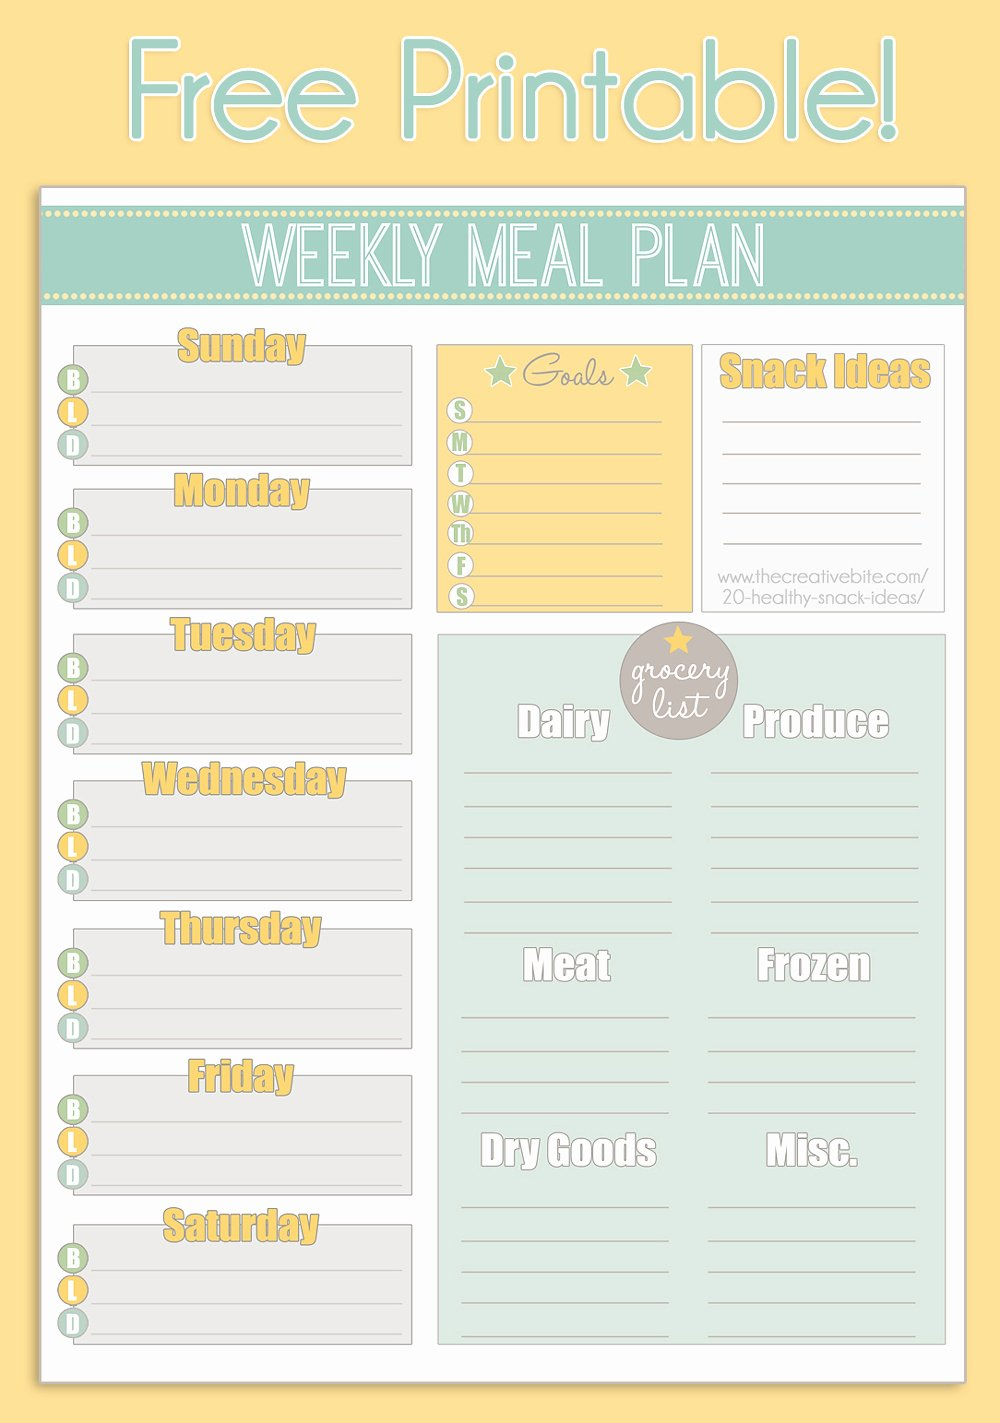 Weekly Meal Plan Template Unique Free Printable Weekly Meal Planner Calendar